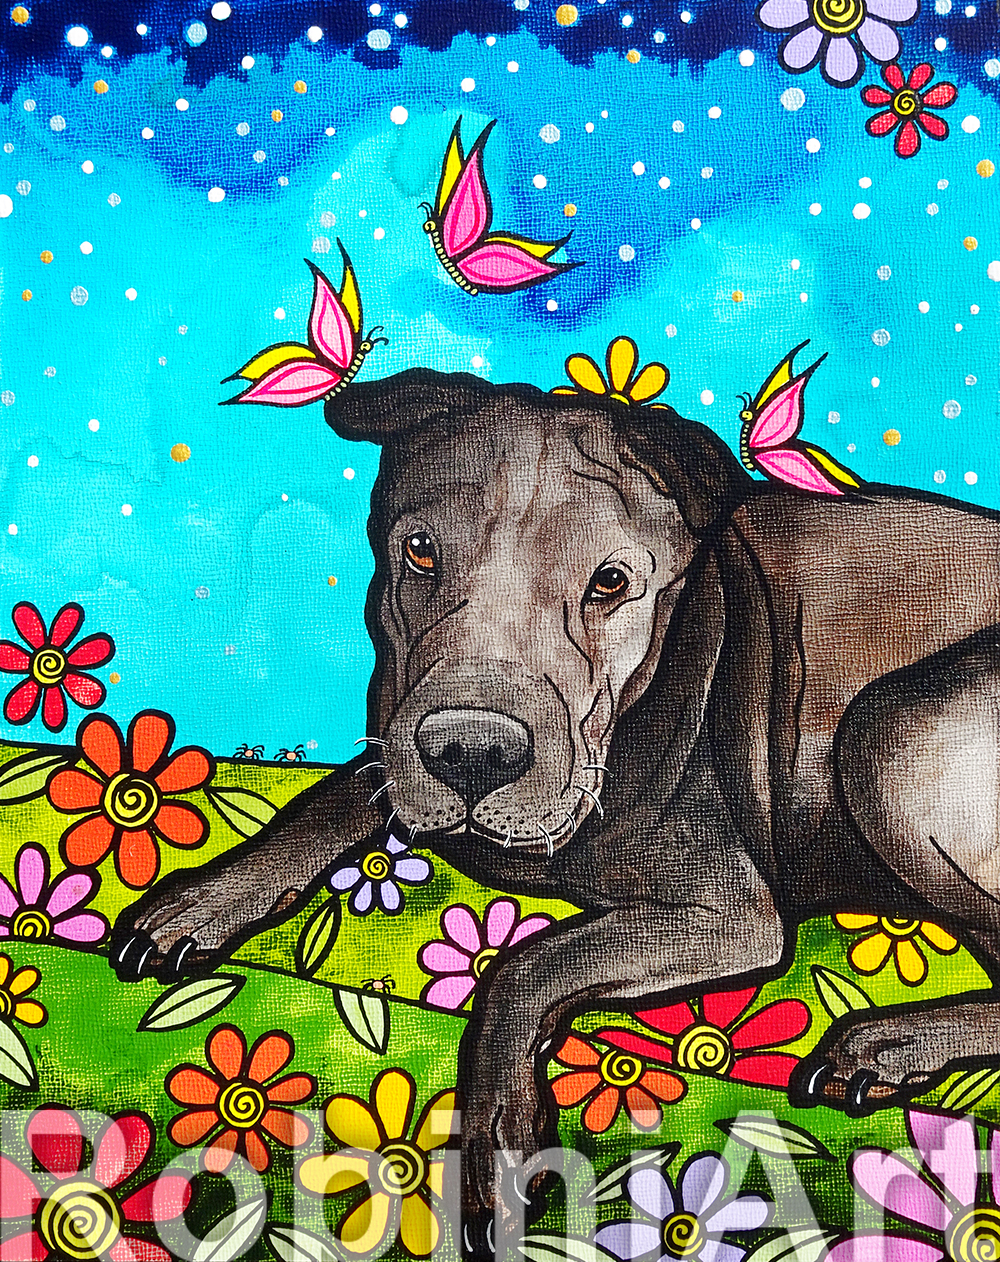 Shar Pei Pet Portrait by RobiniArt 2018